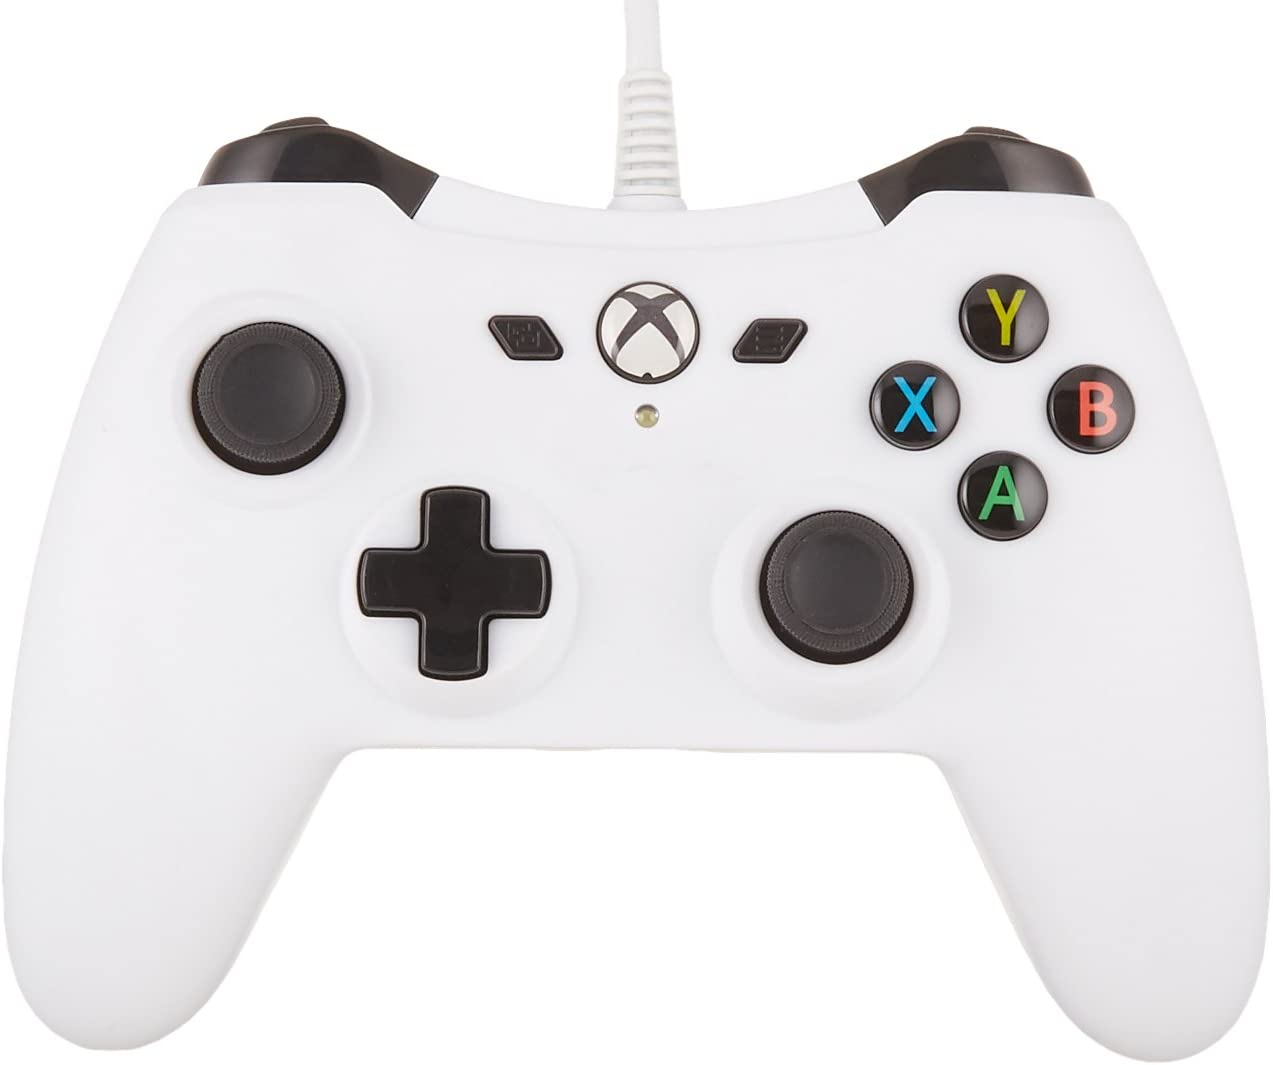 Amazonbasics Xbox One Wired Controller White Old Kaset Ps4 Stardew Valley Collectoramp039s Edition Reg 2 Image Unavailable Not Available For